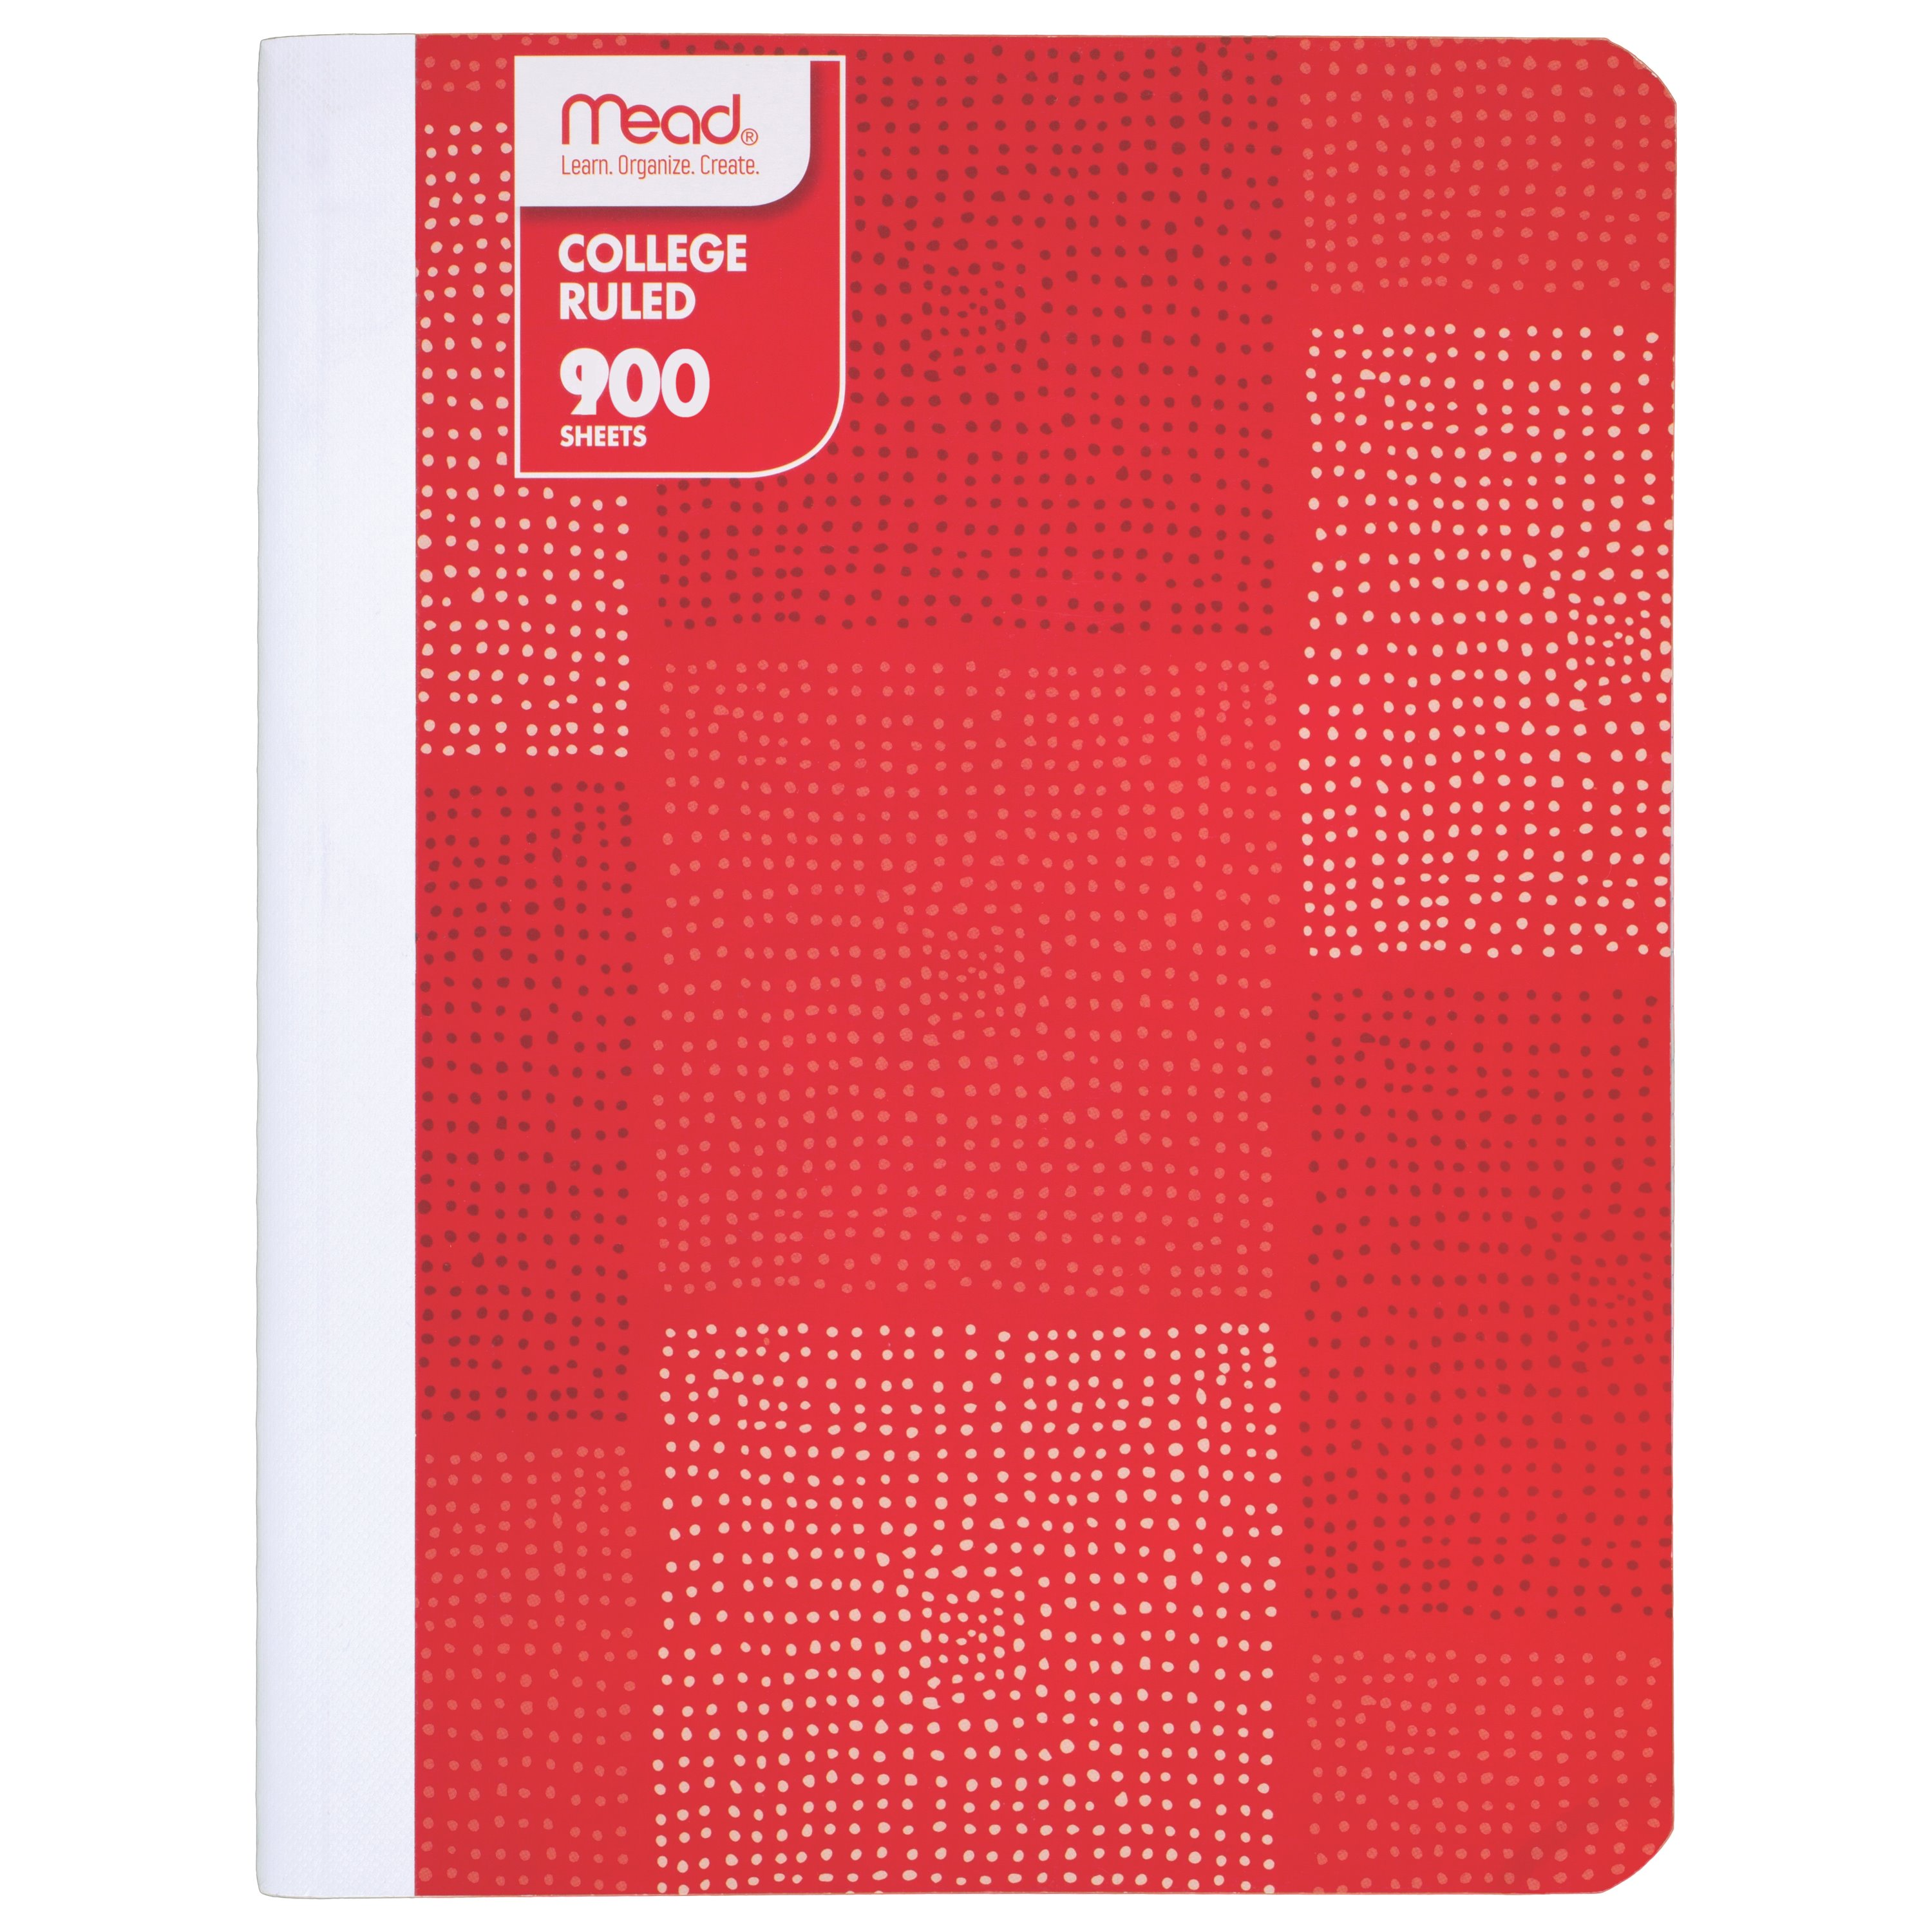 Mead Fashion Composition Book, College Ruled, 100 Sheets, Color May Vary